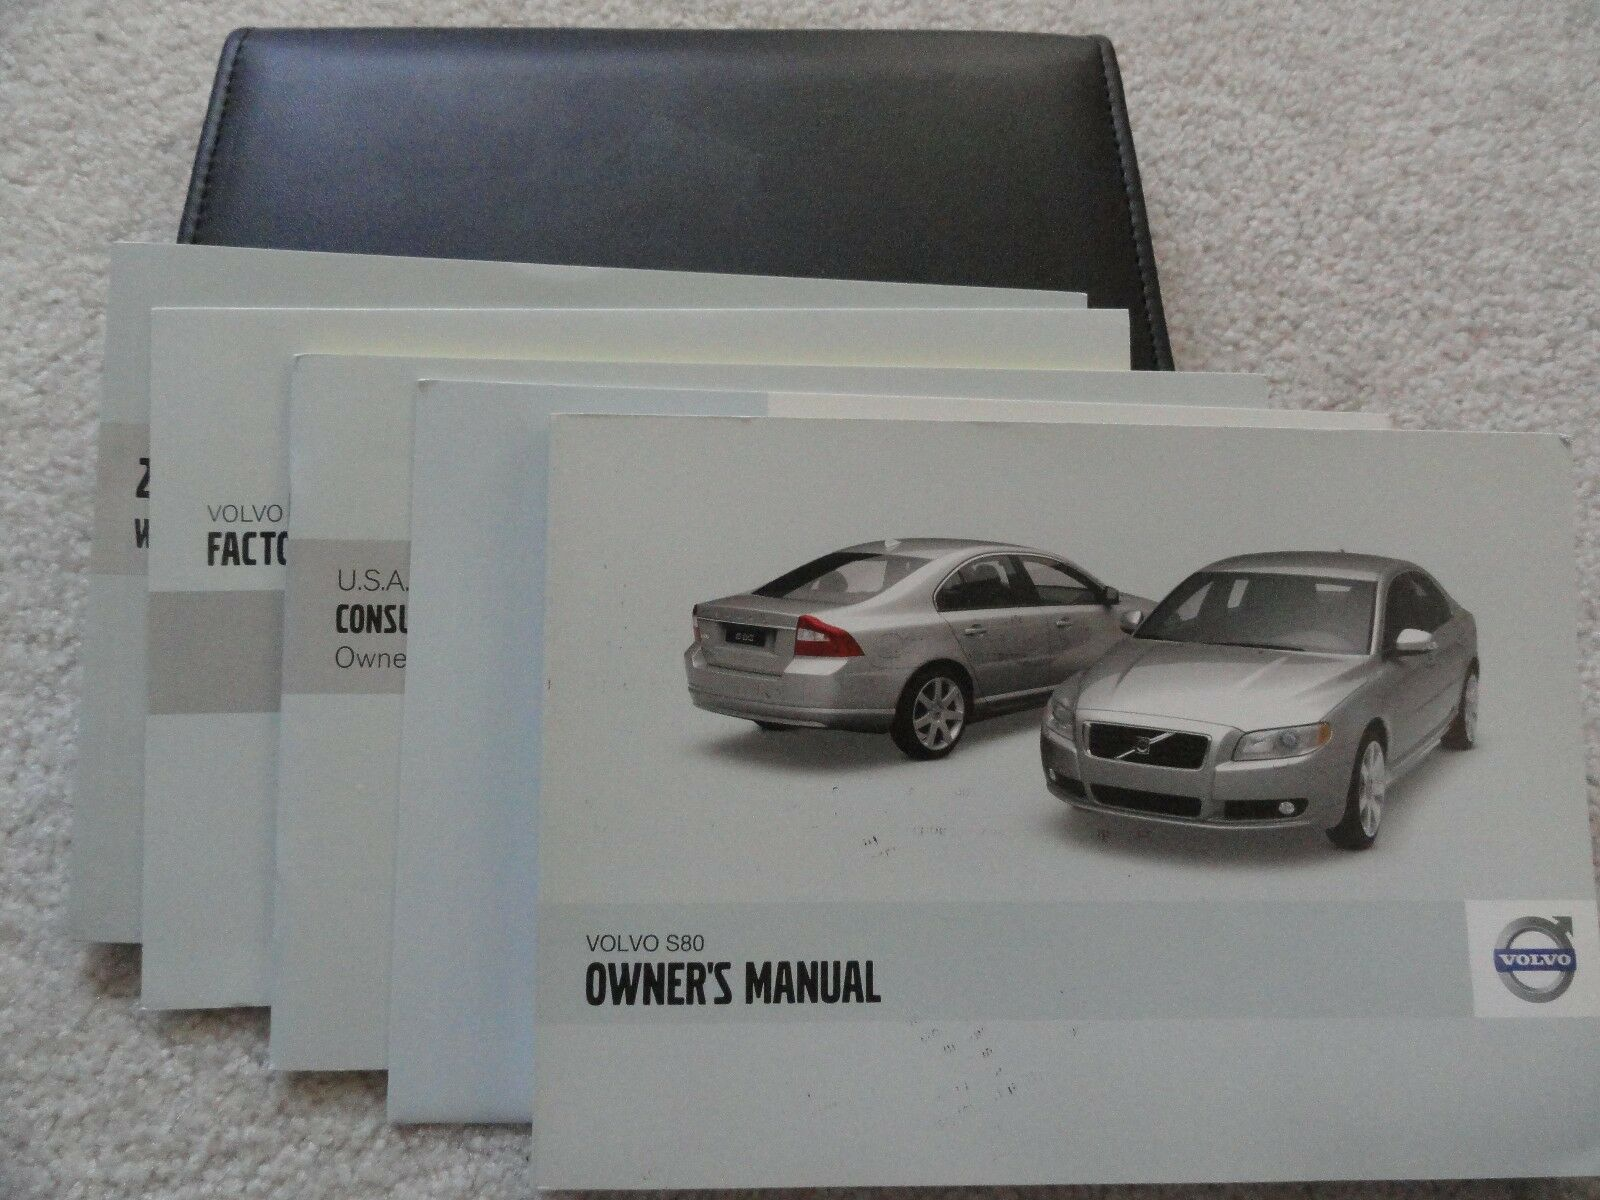 2009 Volvo S80 Owners Manual 1 of 1Only 1 available ...